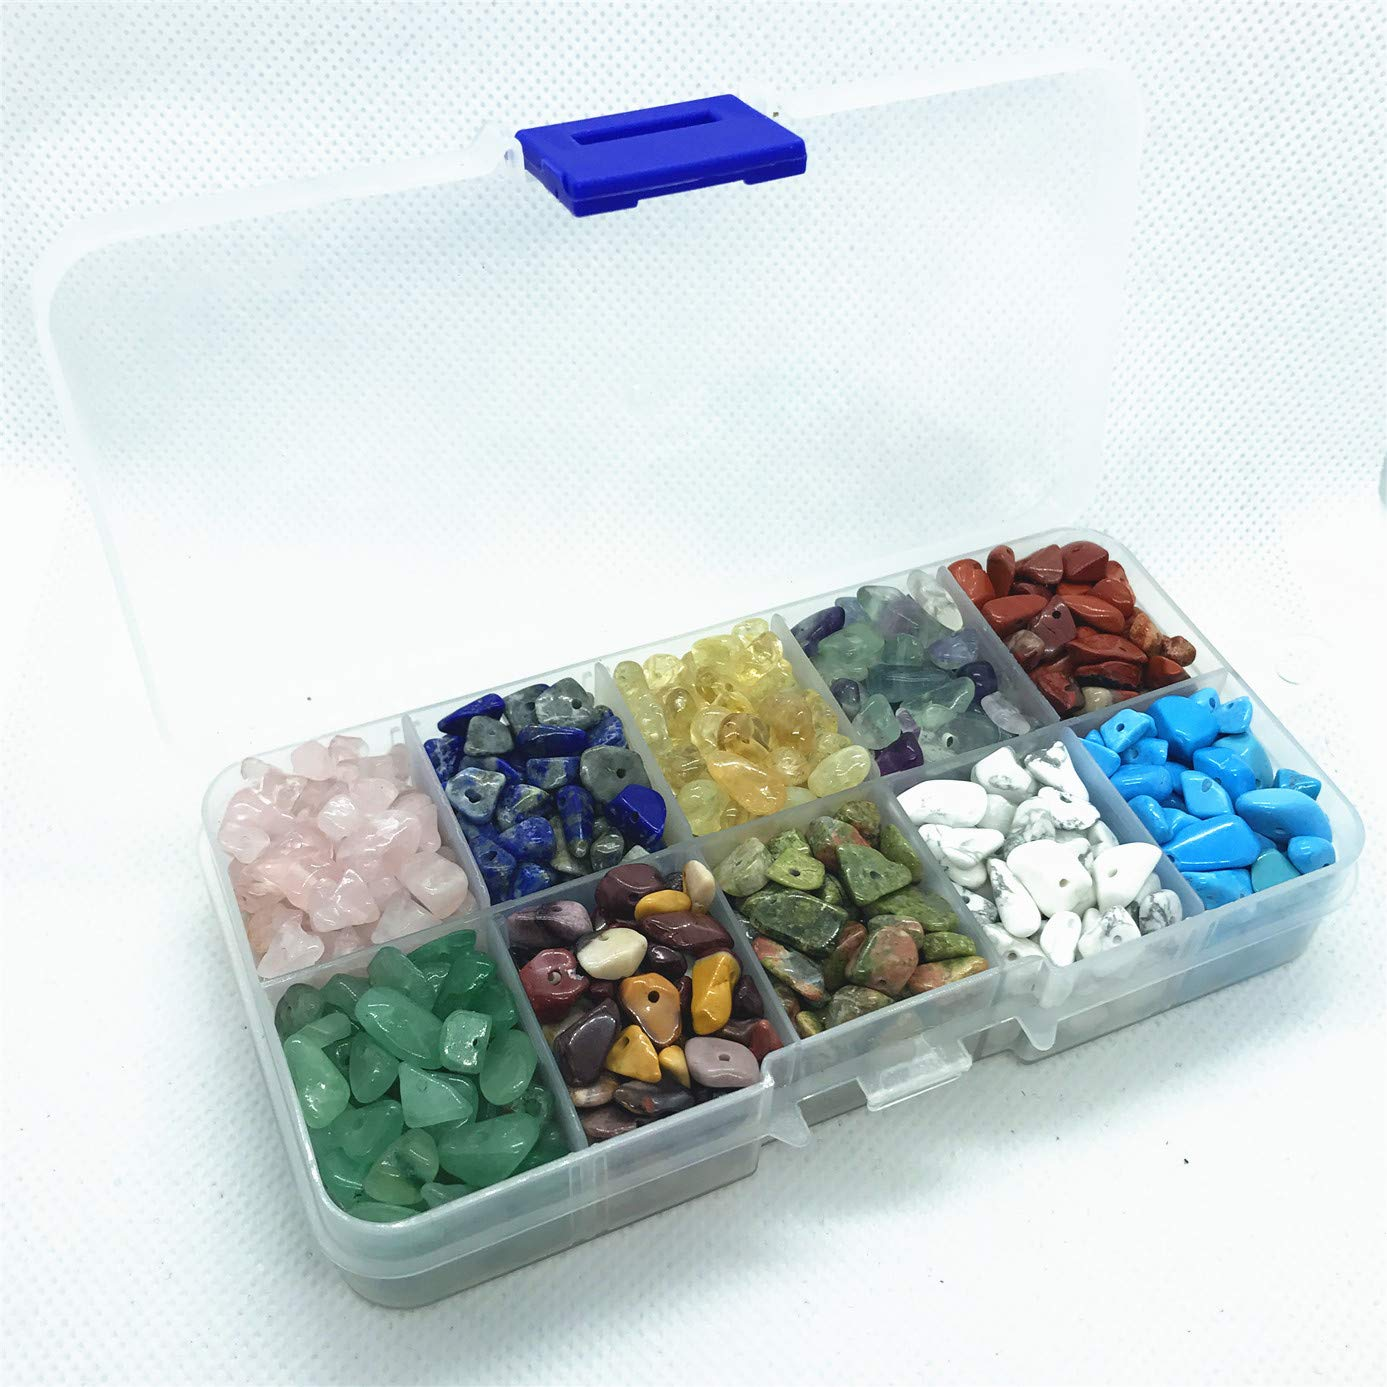 Healing Engry Crystals Polishing Crushed Irregular Shaped Beads with Box 15 Materials 1500 Pcs Chip Gemstone Beads DIY Jewelry Making